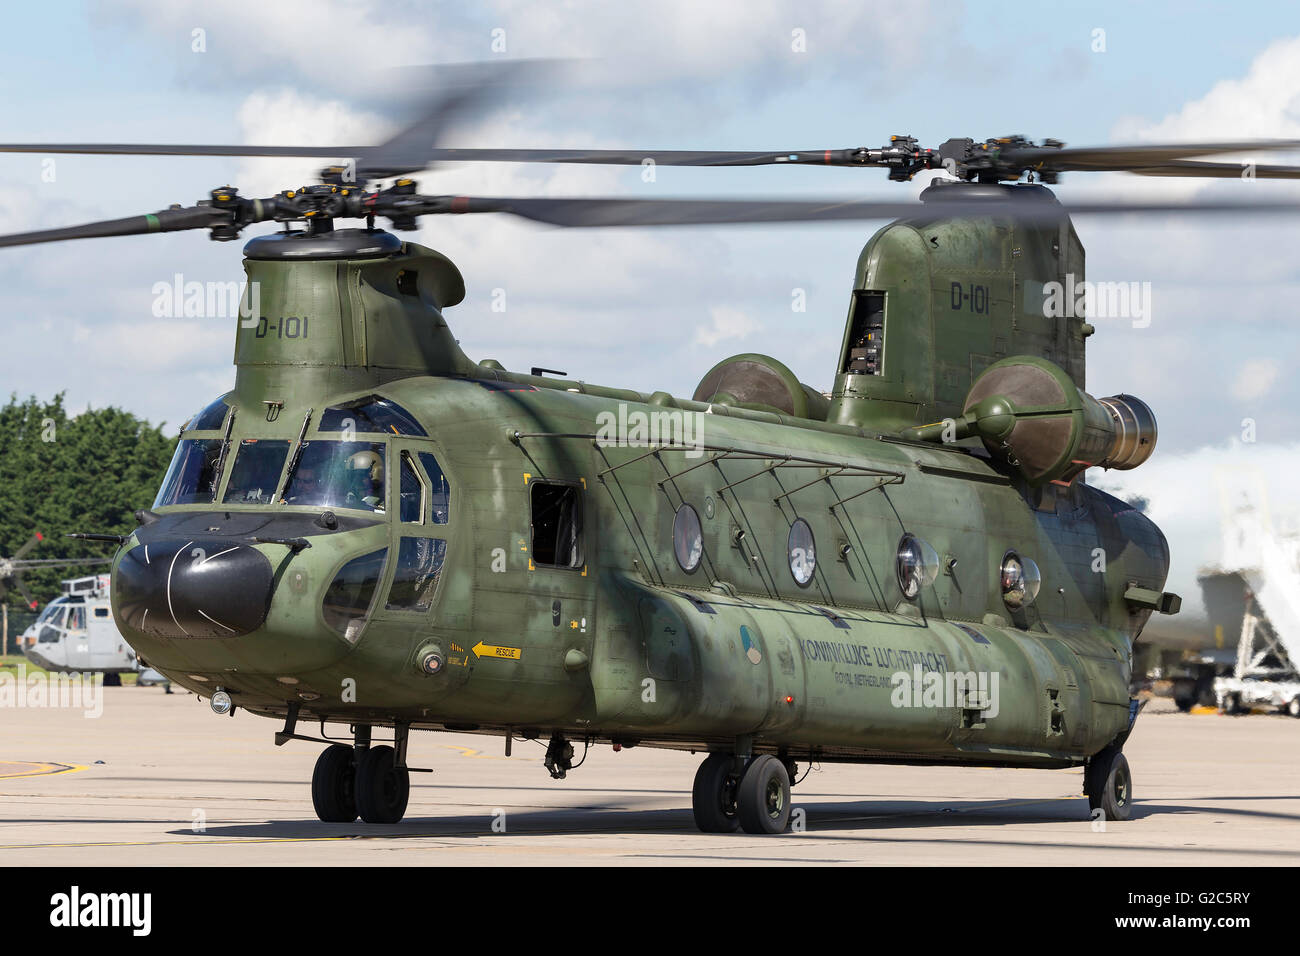 Elicottero Ch : Royal netherlands air force boeing ch d chinook trasporto